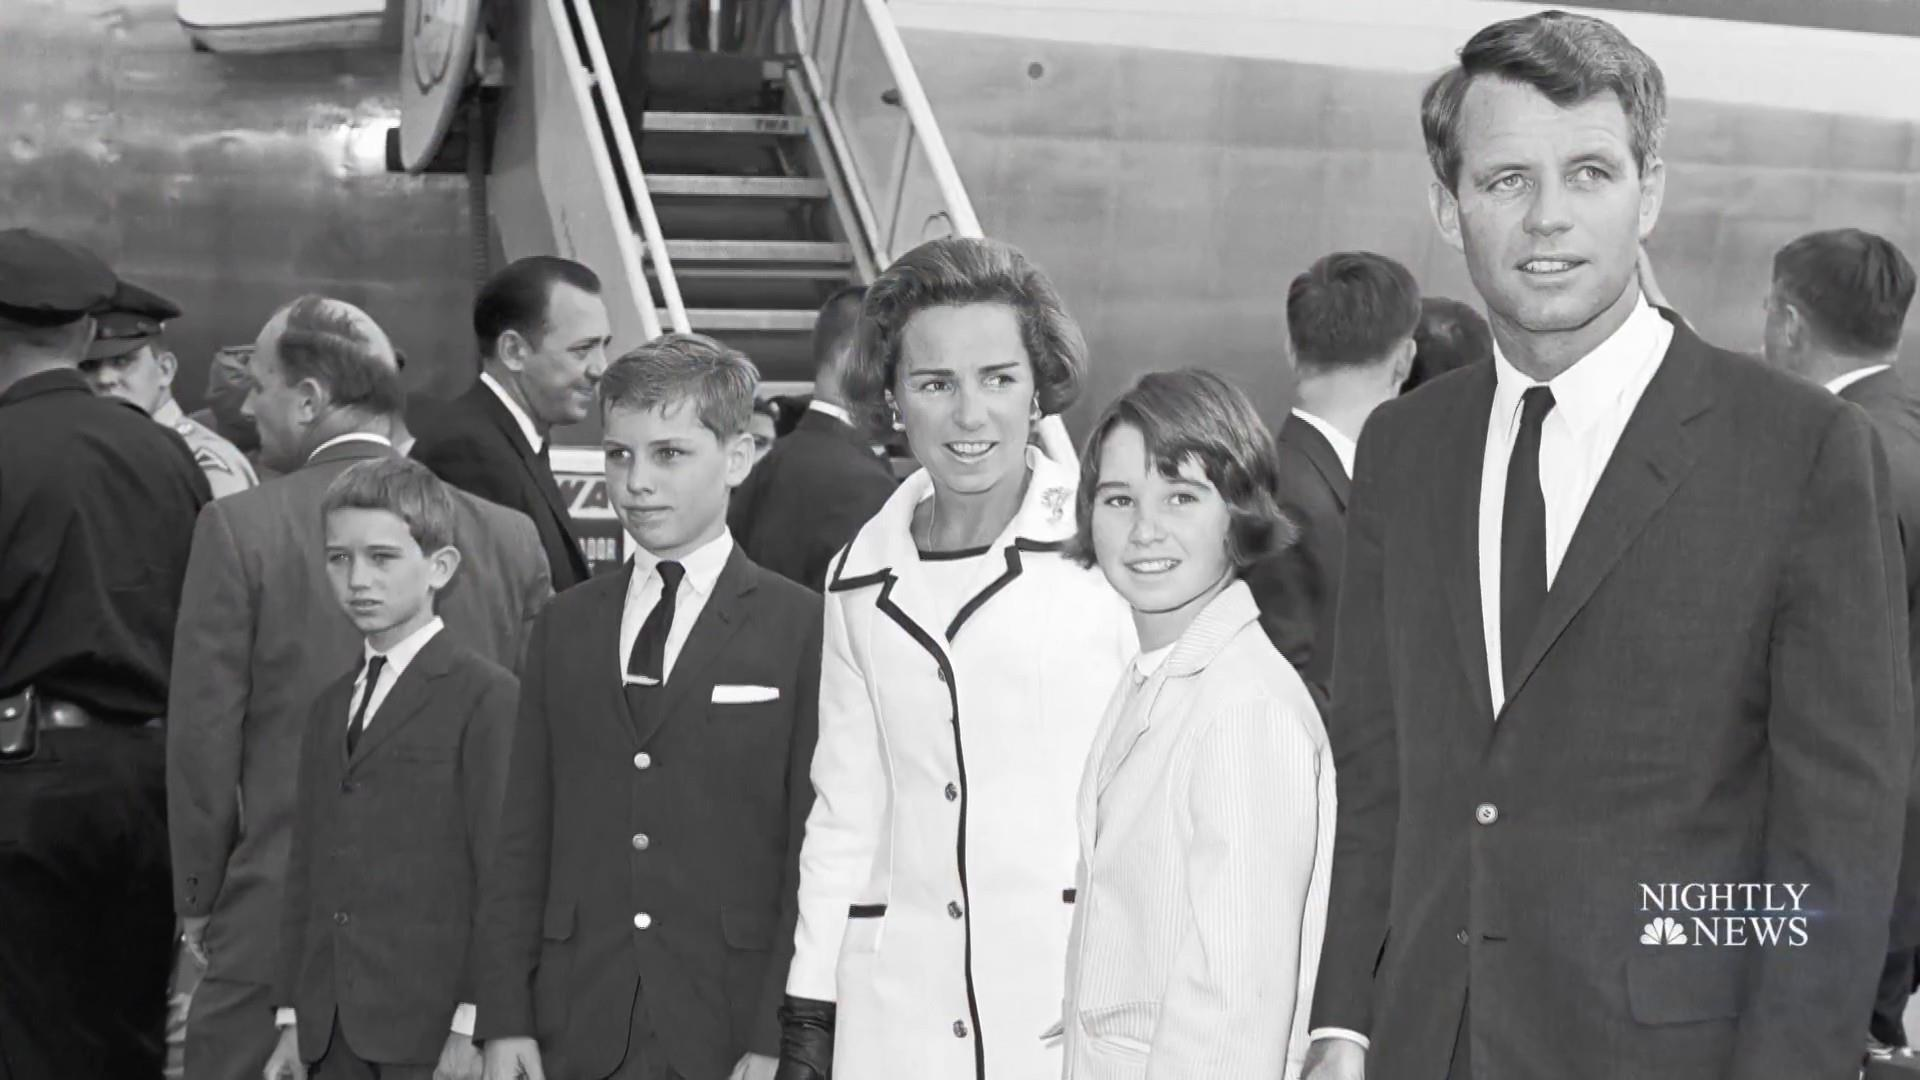 Is disagreement over vaccines causing tension in Kennedy family?